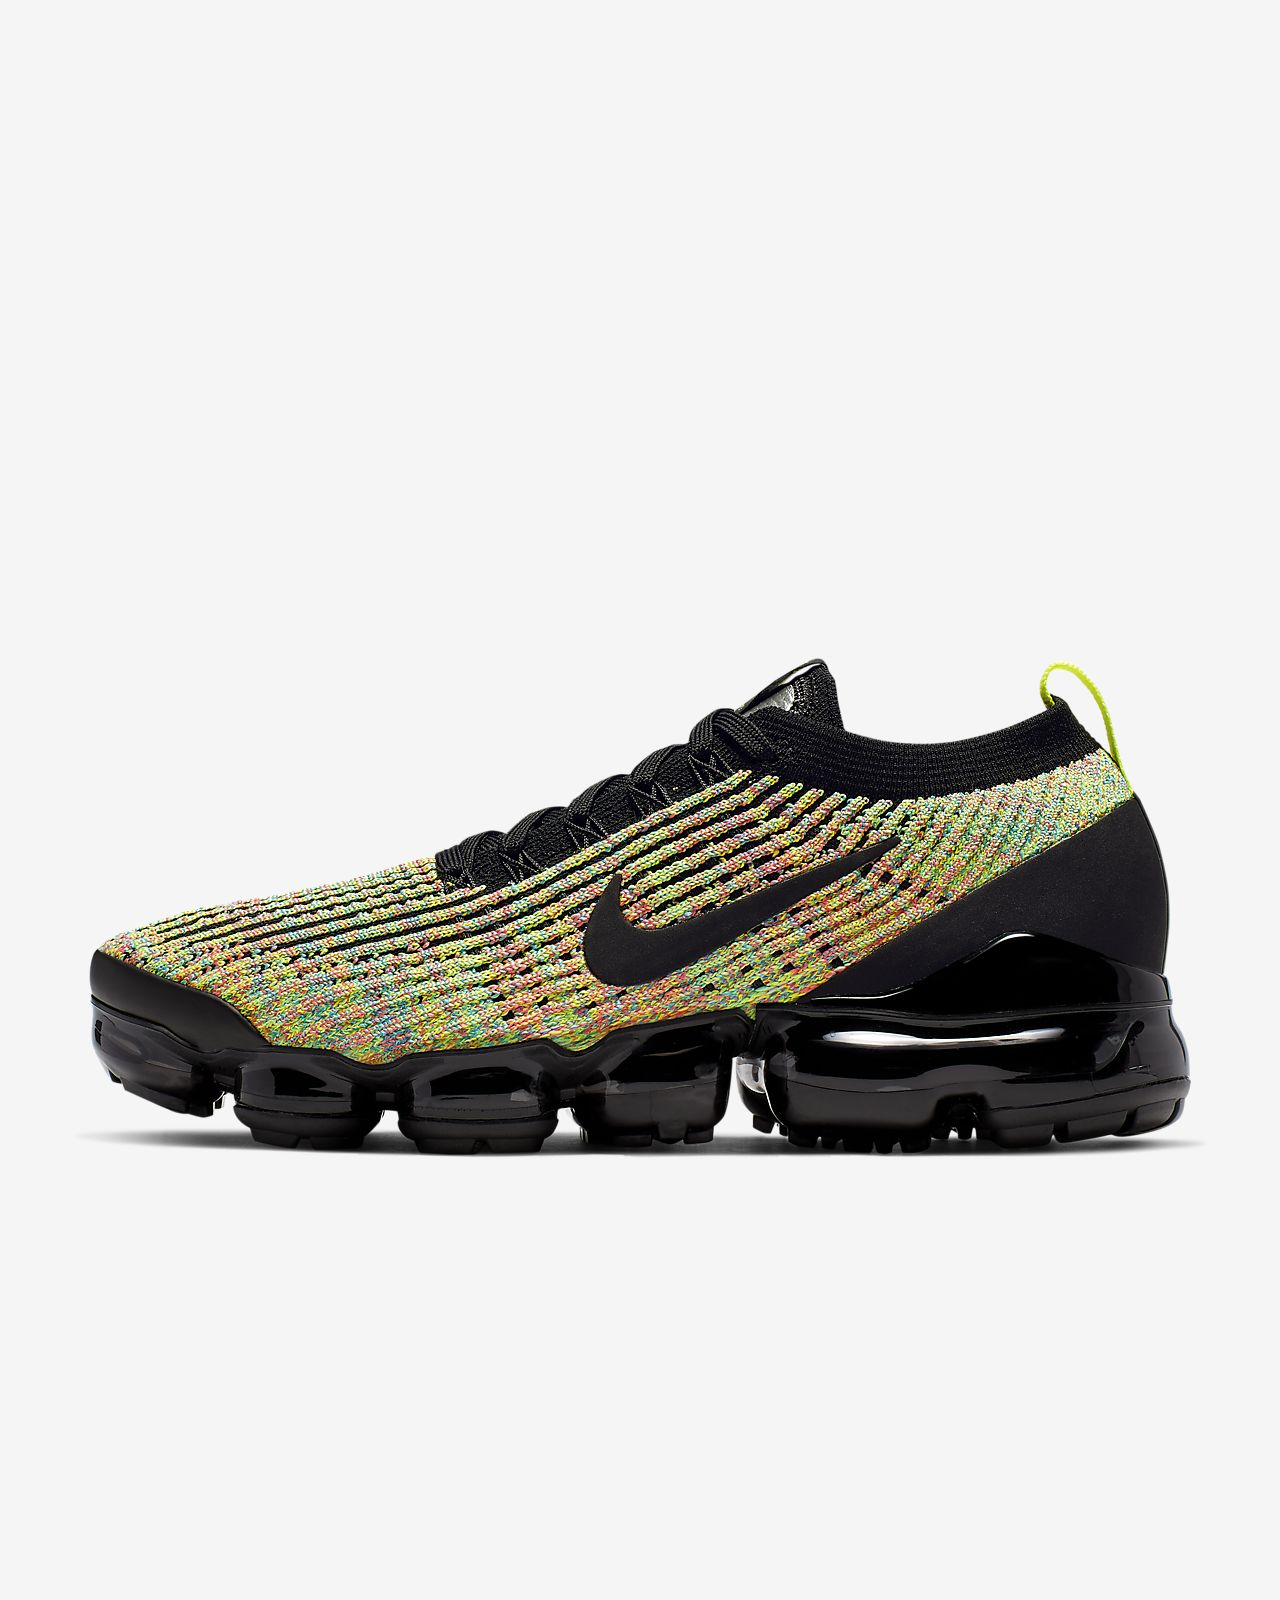 exquisite design catch exquisite design Nike Air VaporMax Flyknit 3 Women's Shoe